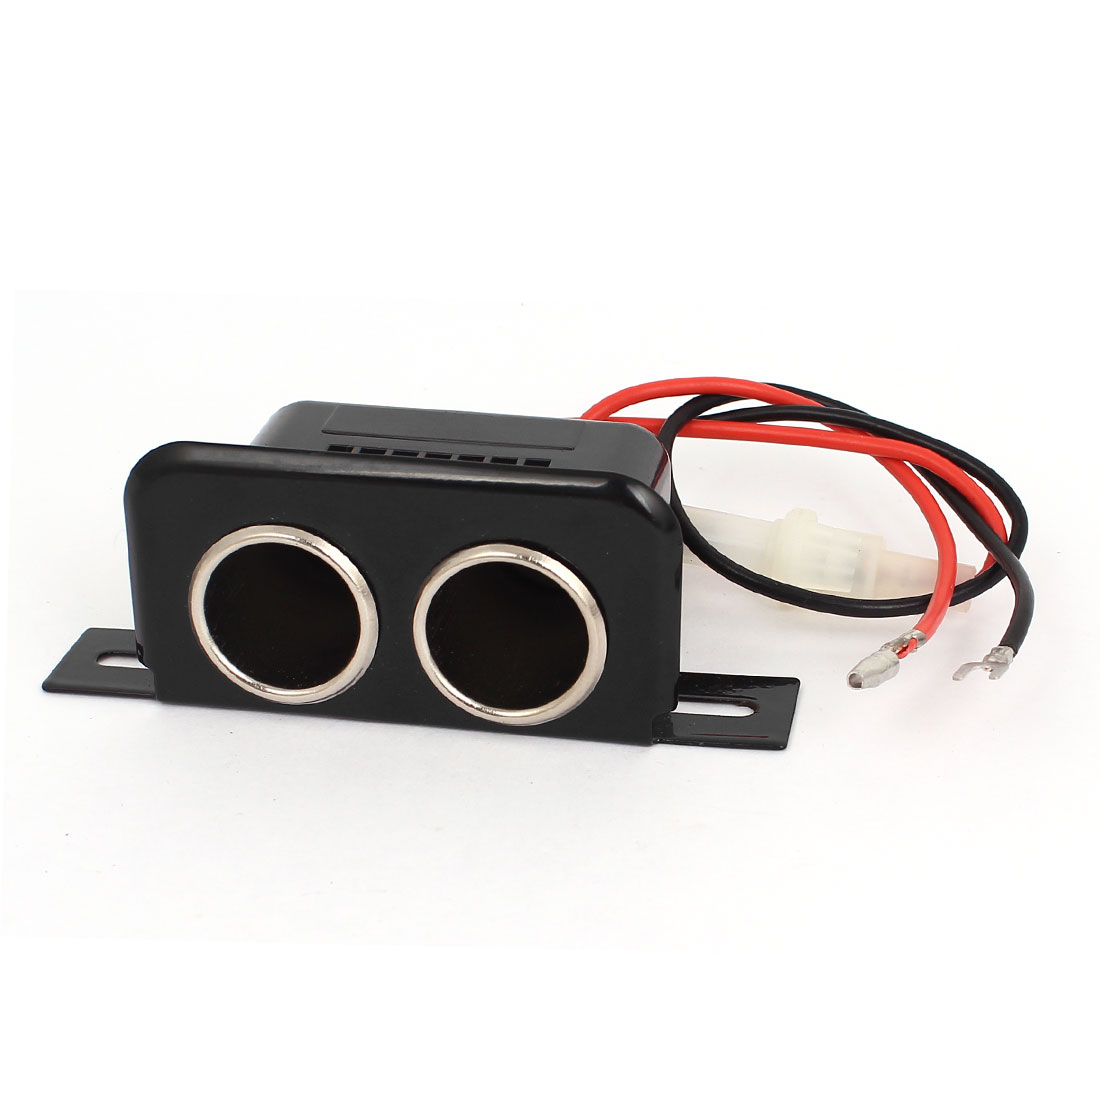 12v Female Car Cigarette Lighter Double Socket Connector Adapter